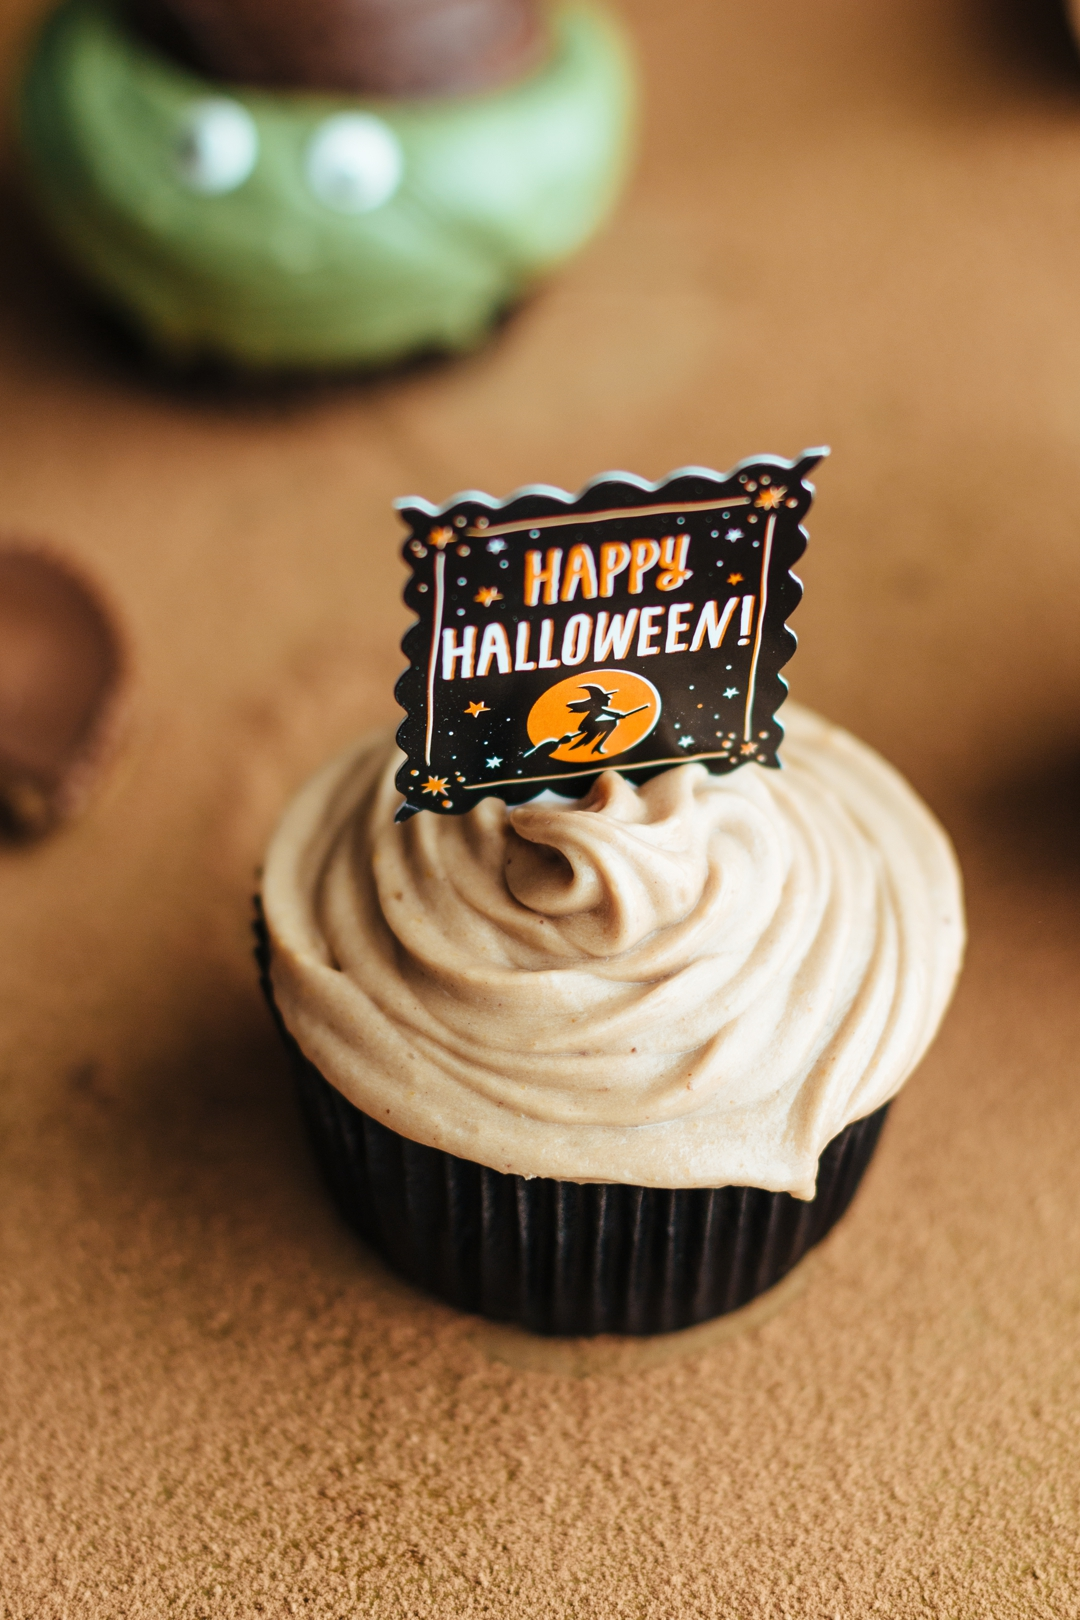 Slight overhead shot of a frosted cupcake with a happy halloween sign stuck in the top.